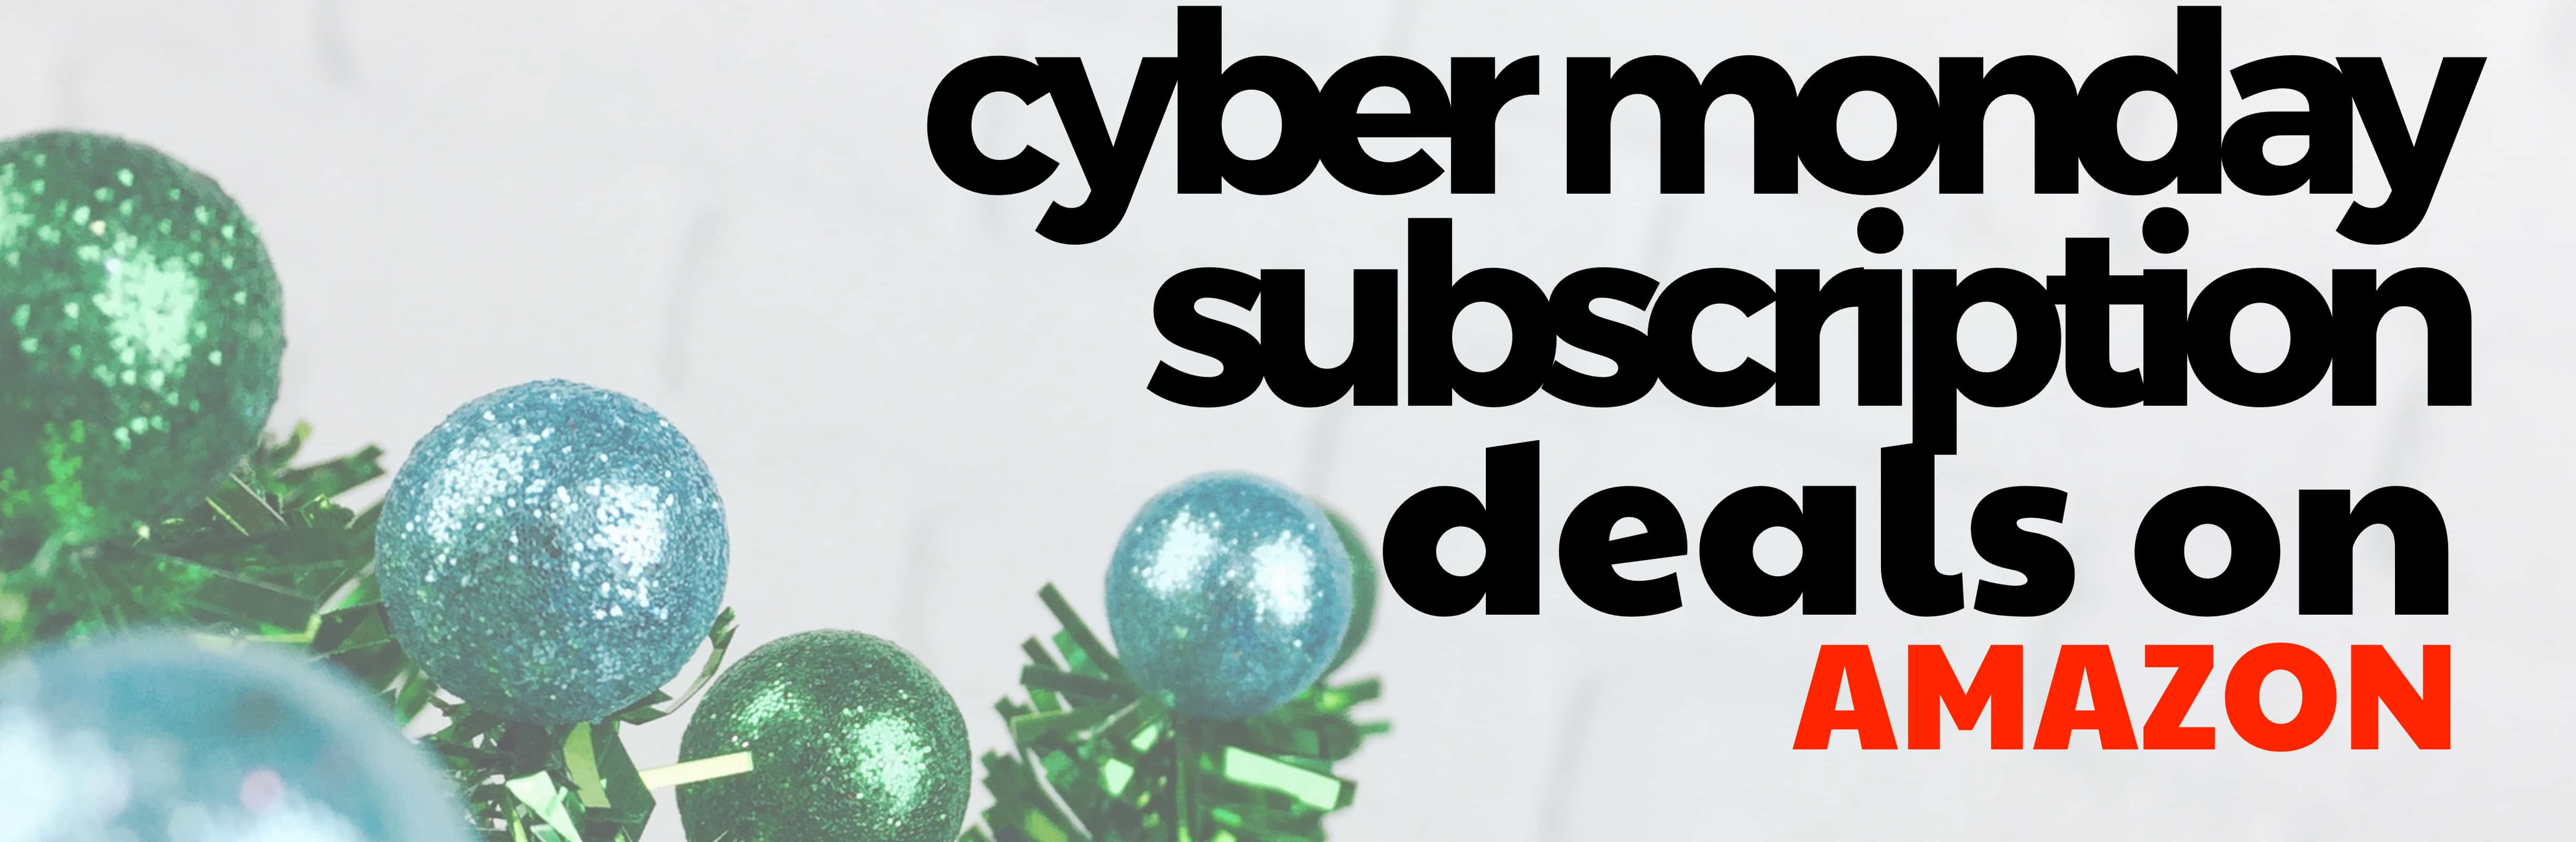 Cyber Monday Subscription Deals on AMAZON!